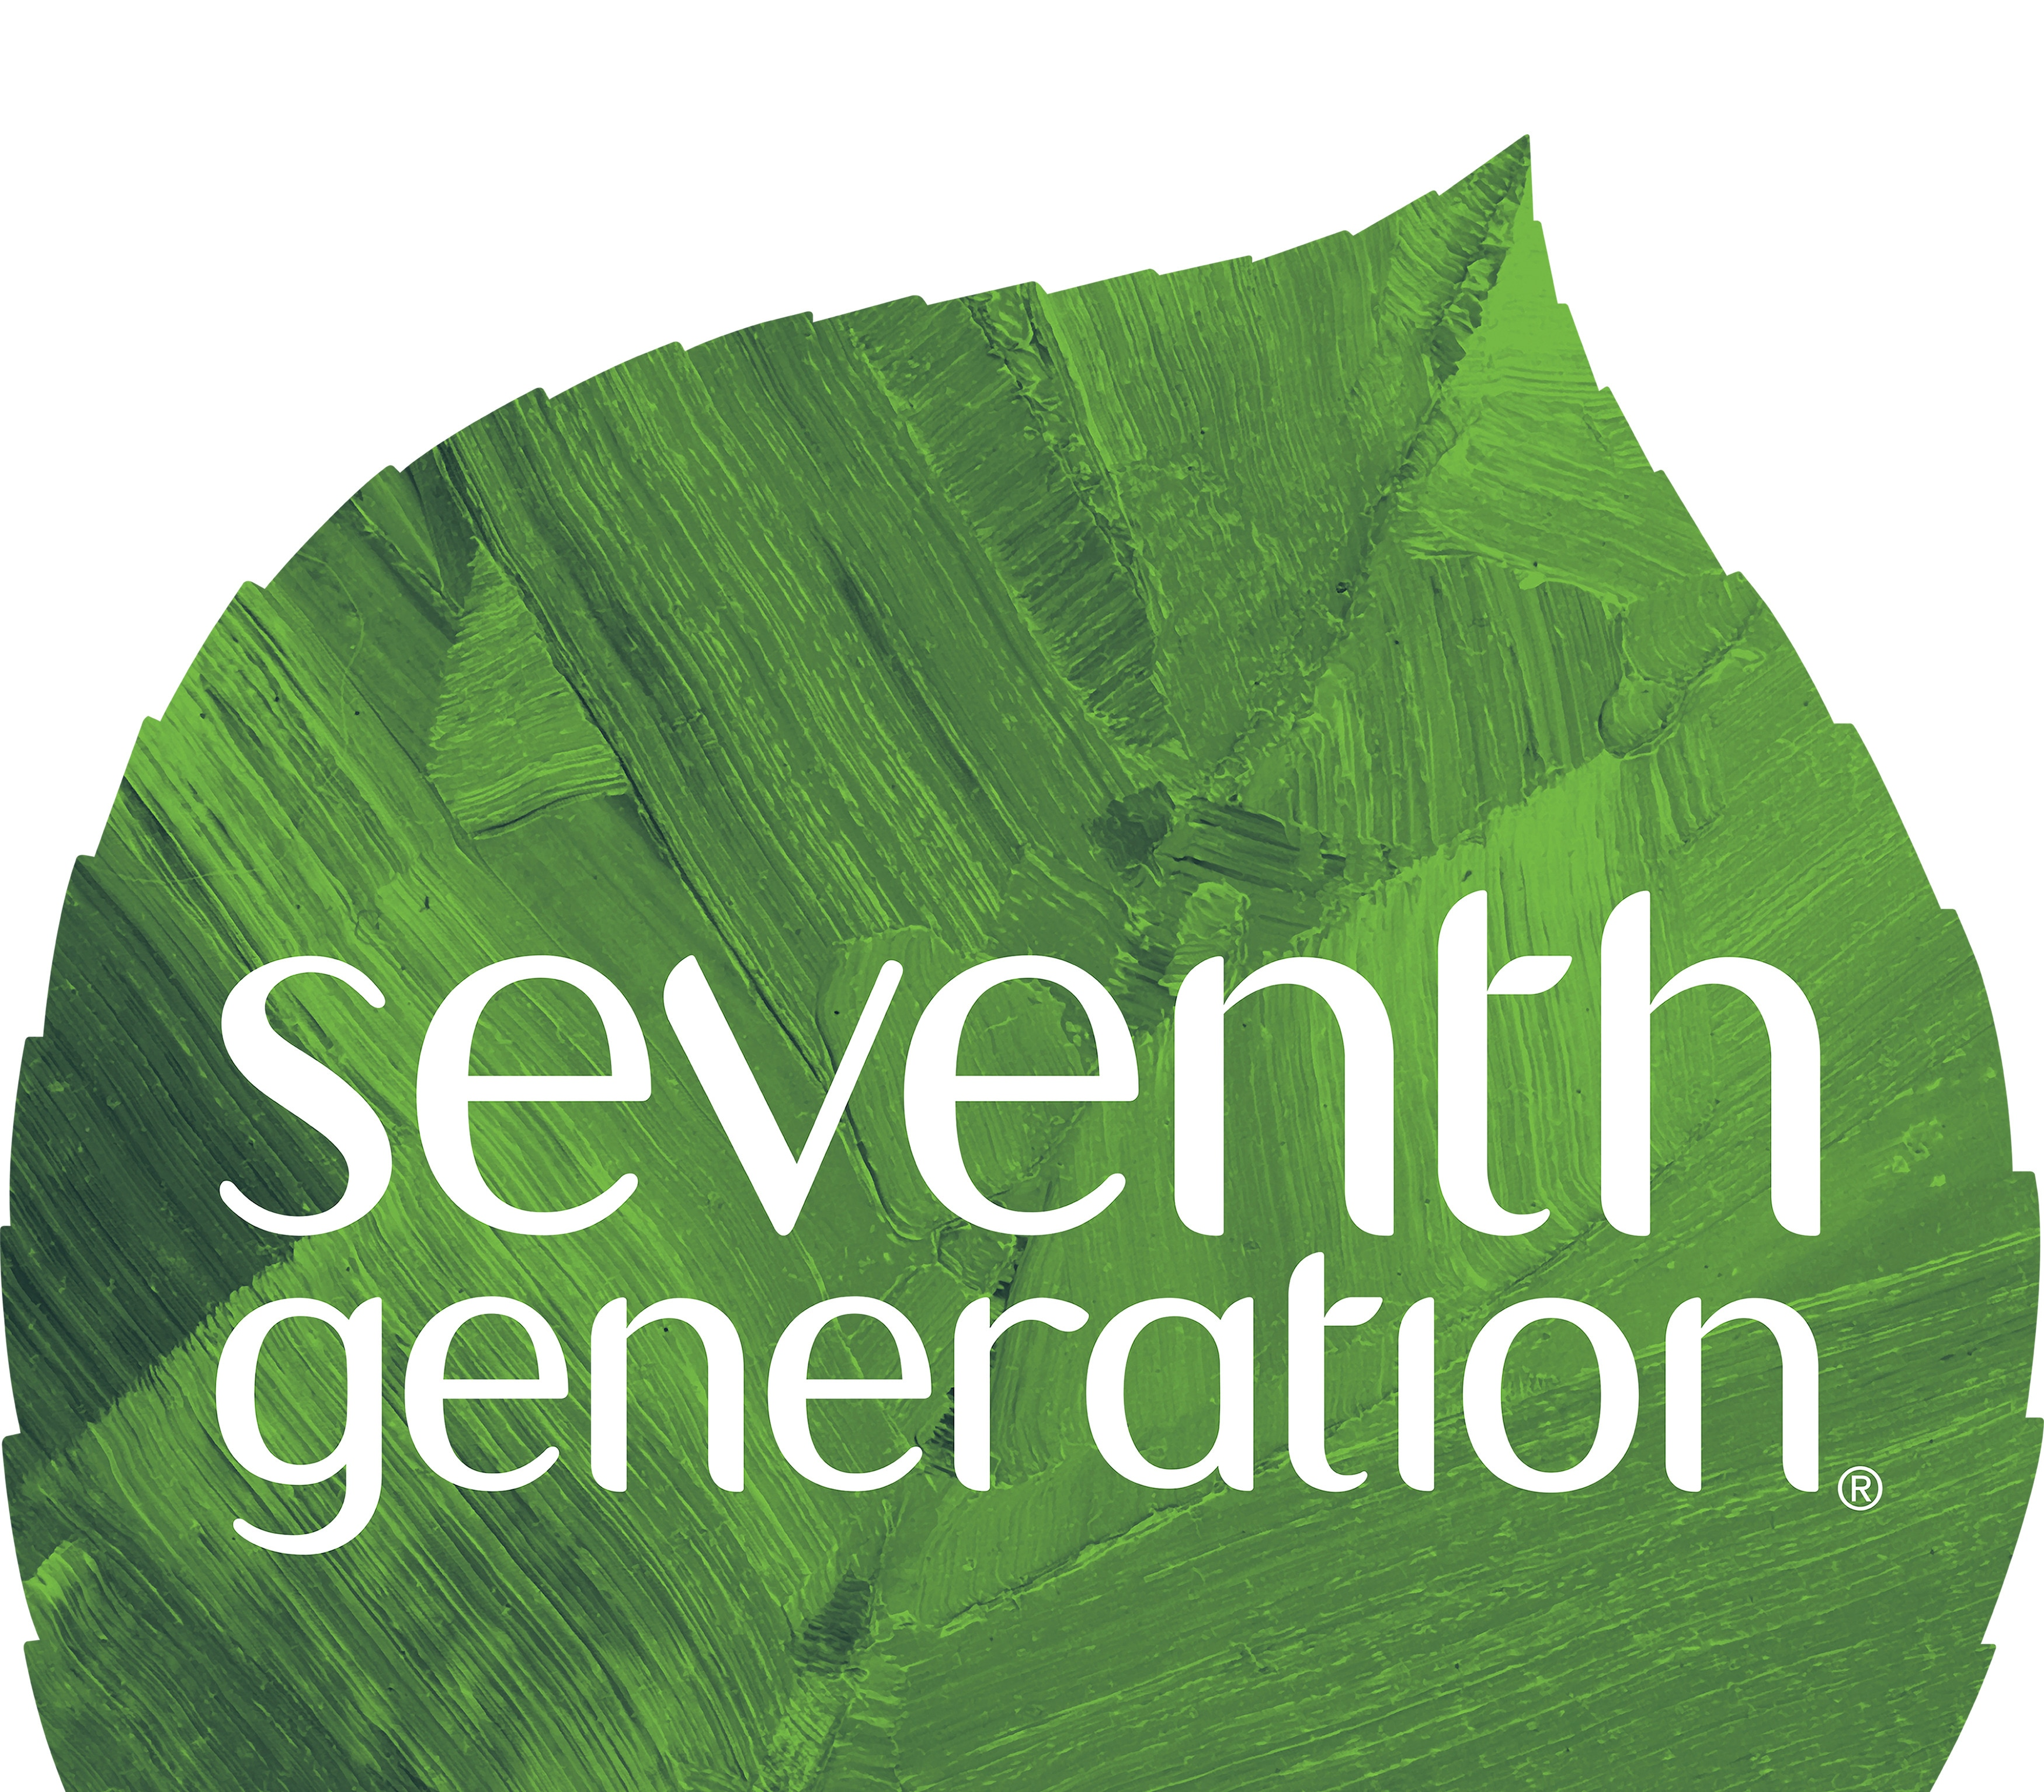 Seventh Generation Homepage